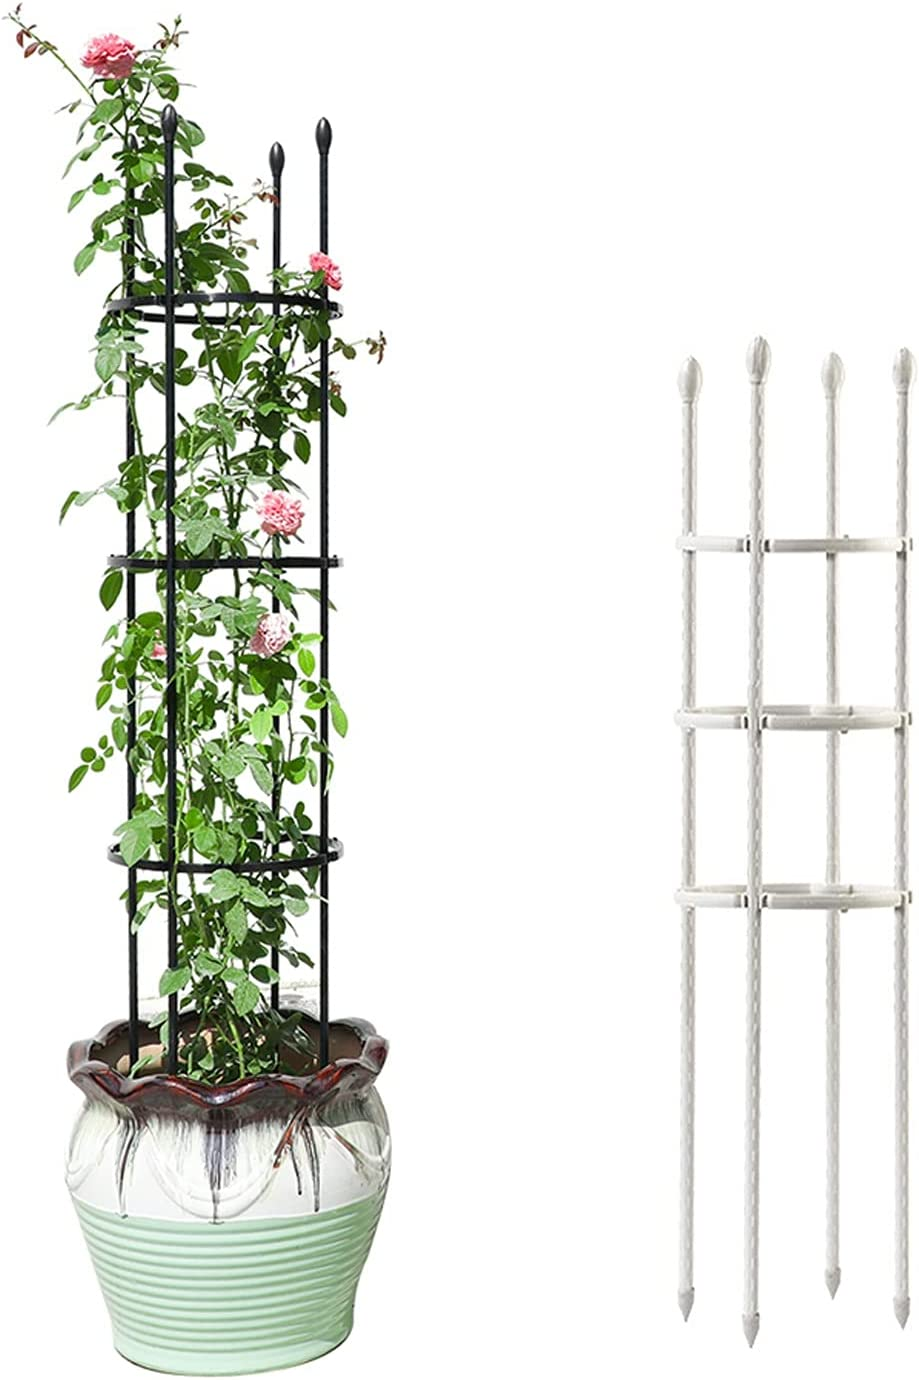 Ranking integrated 1st place JTGPFC Tomato Cages Vegetable Trellis for Chicago Mall Stake Tomatos